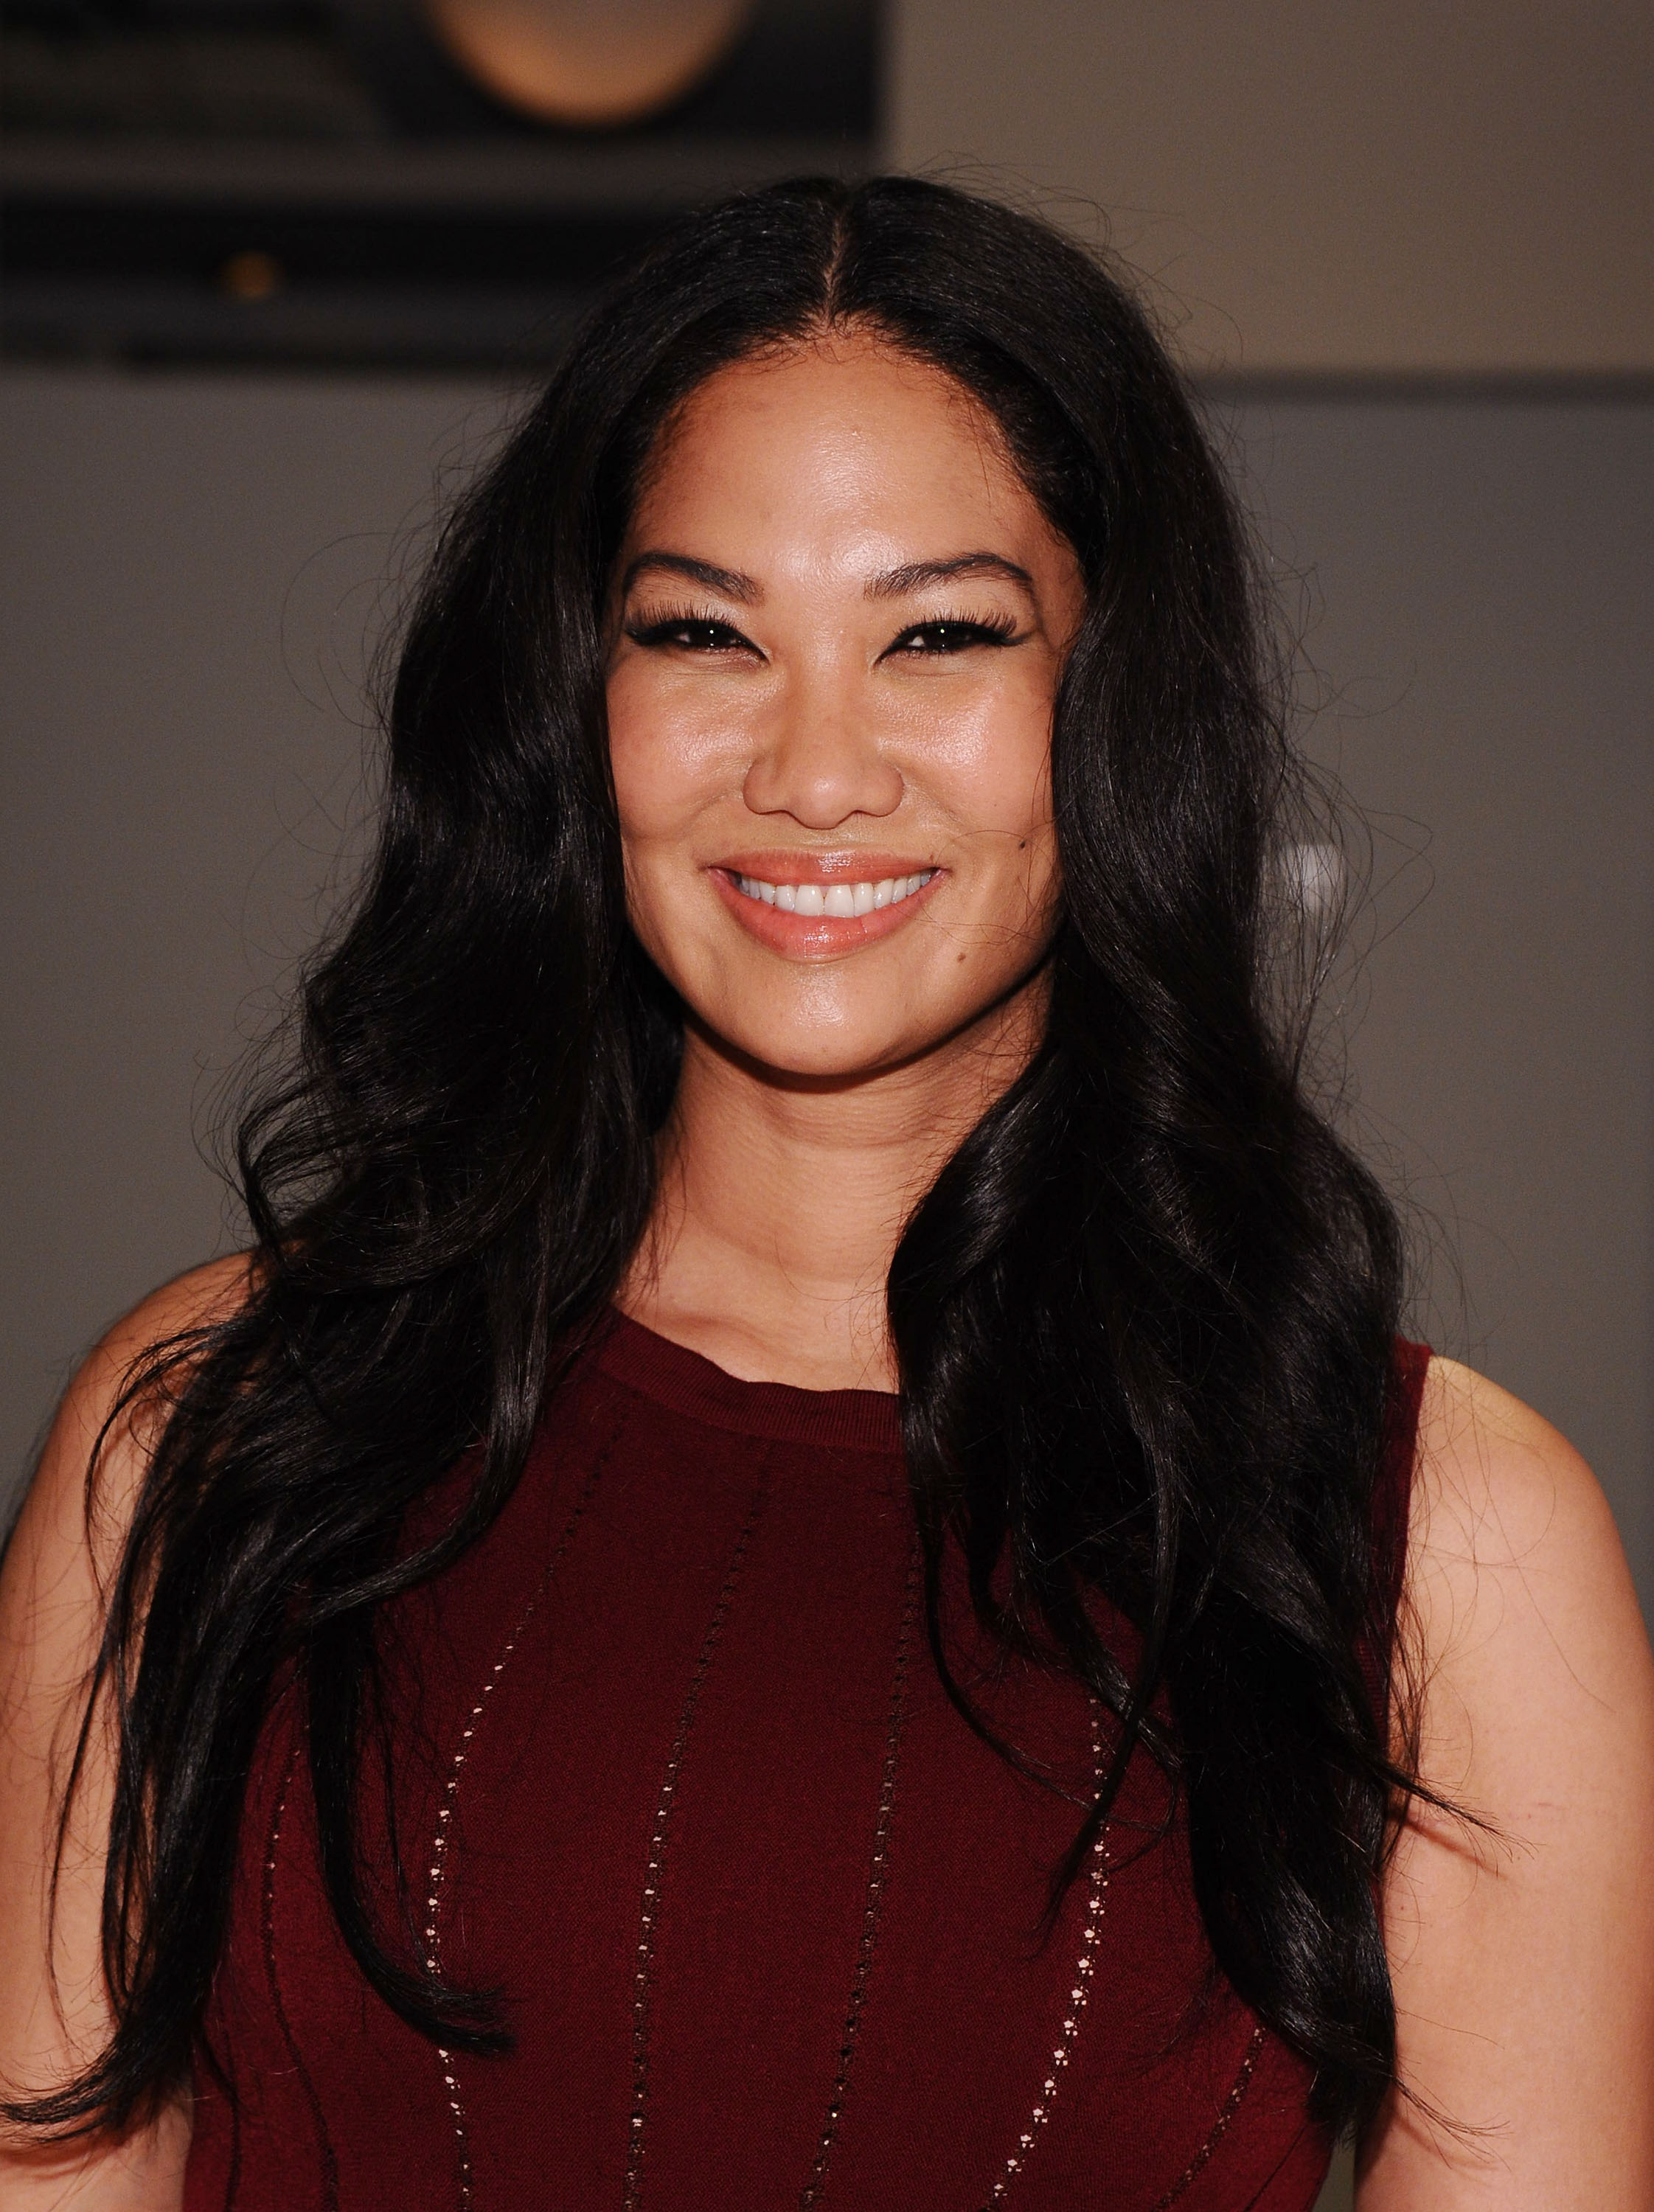 Kimora Lee Simmons at the Mercedes-Benz Fashion Week Spring 2015 at Helen Mills Event Space on September 5, 2014 in New York City | Photo: Getty Images